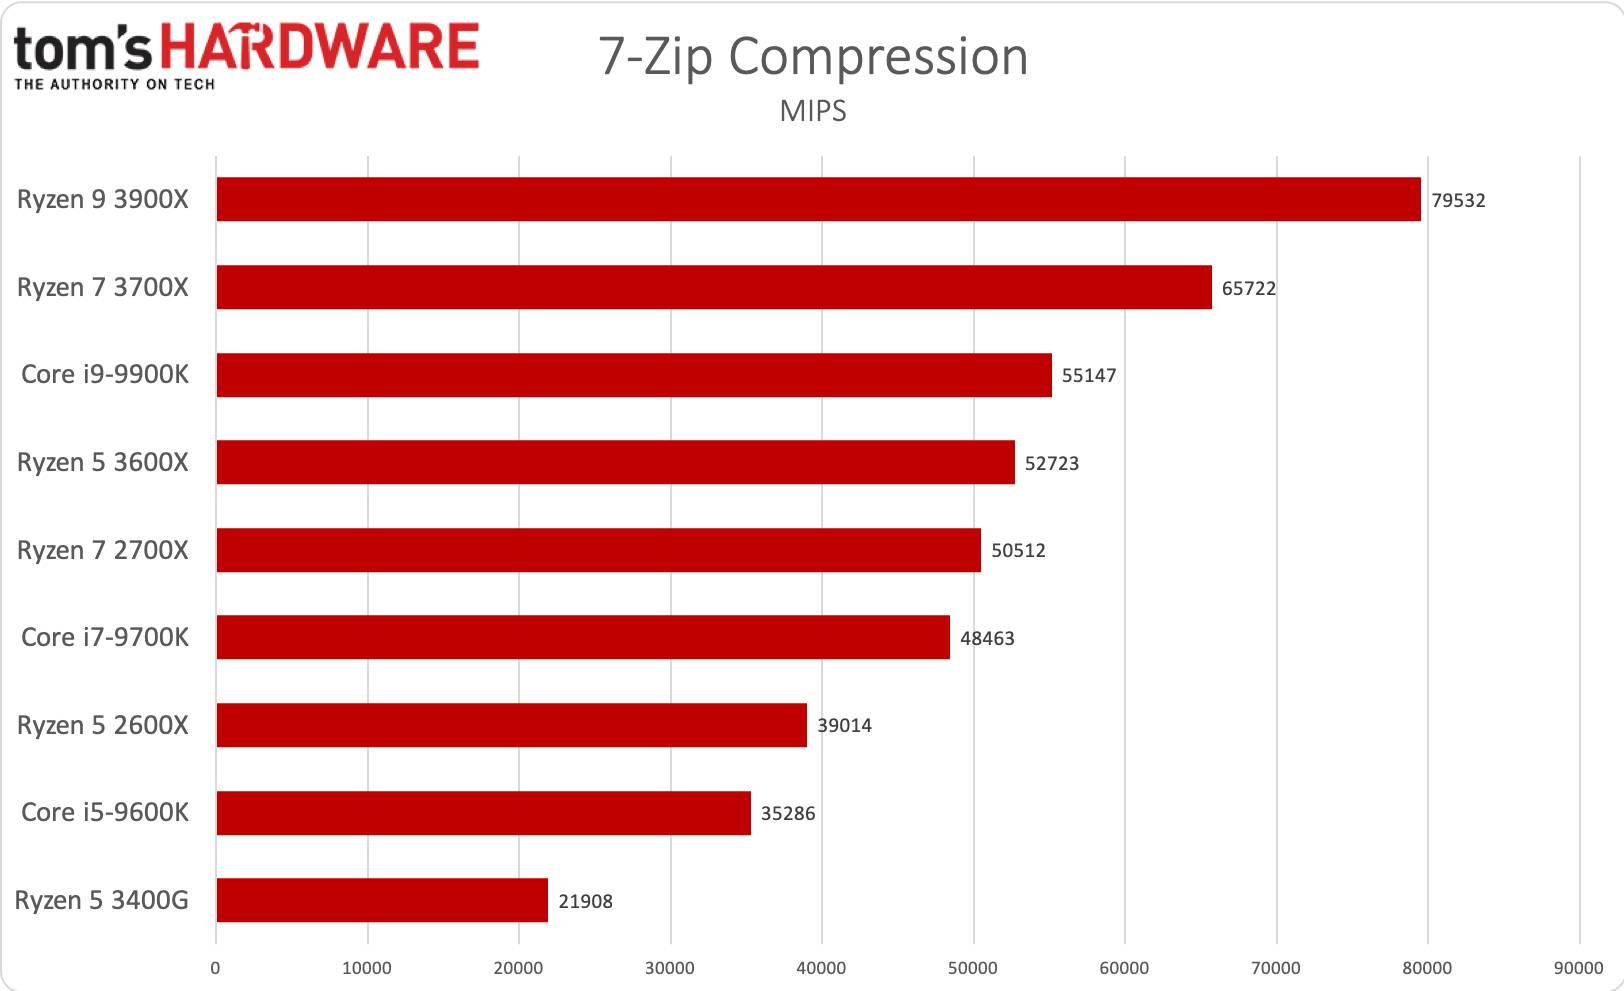 Ryzen 5 - 7zip compression